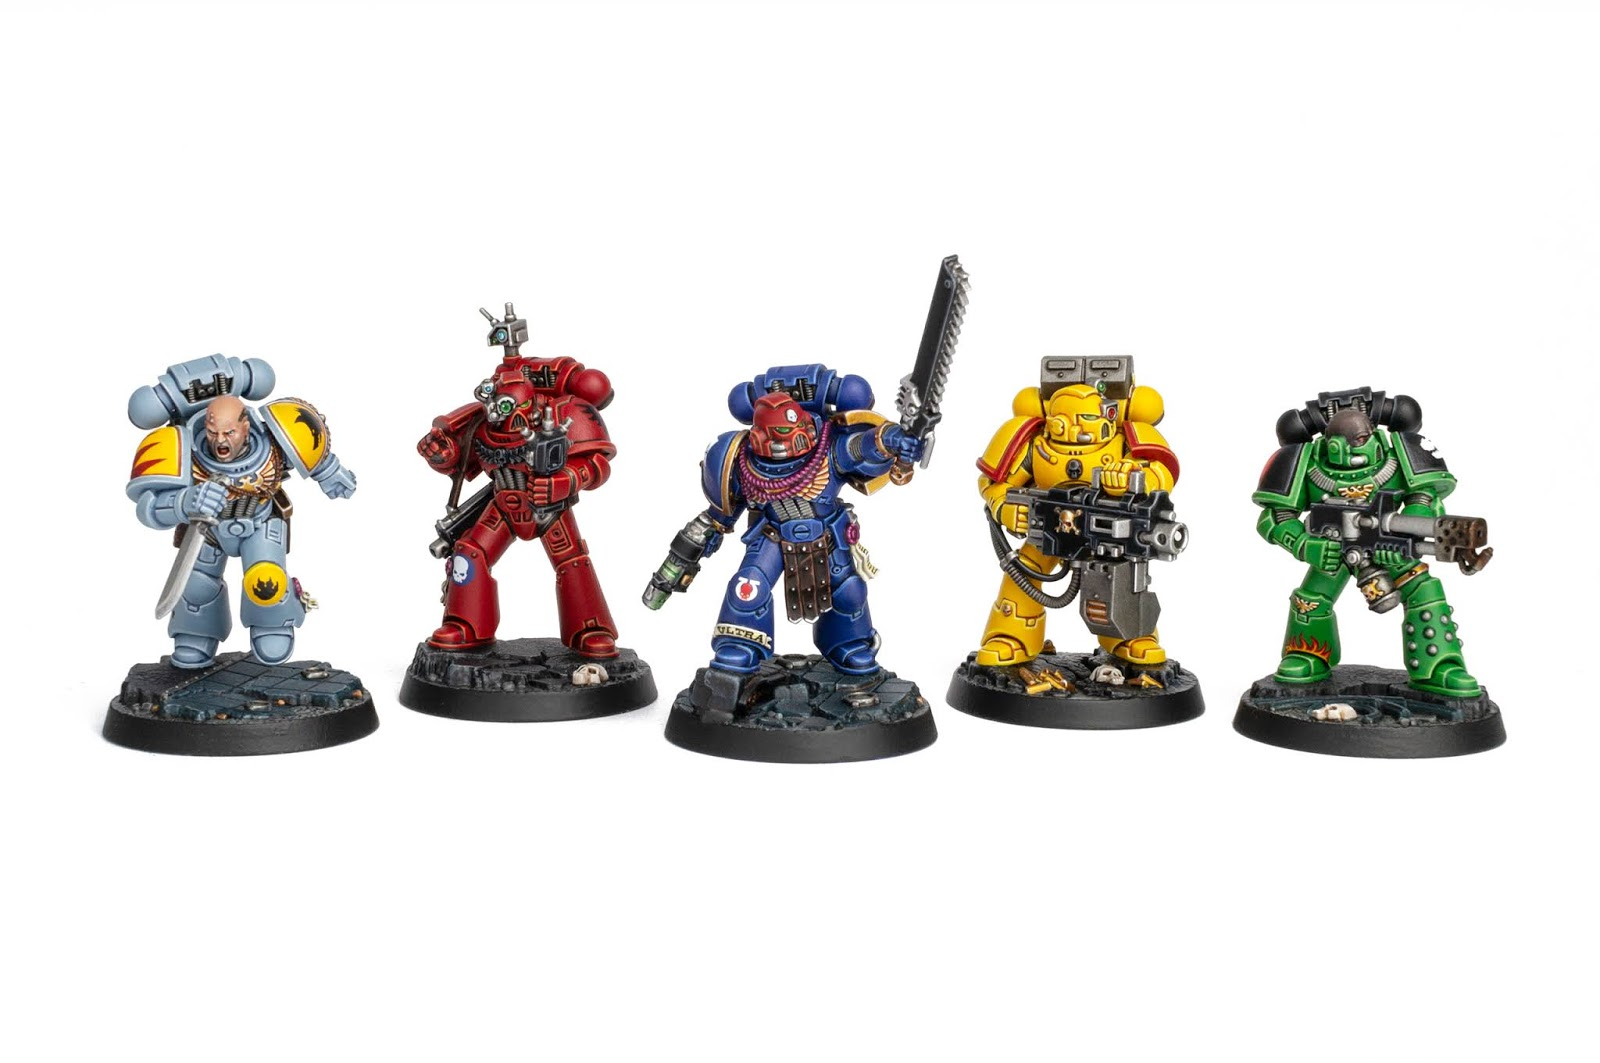 Space Marine Heroes Series 1 from the Space Marine Adventures boxed game painted by Stahly